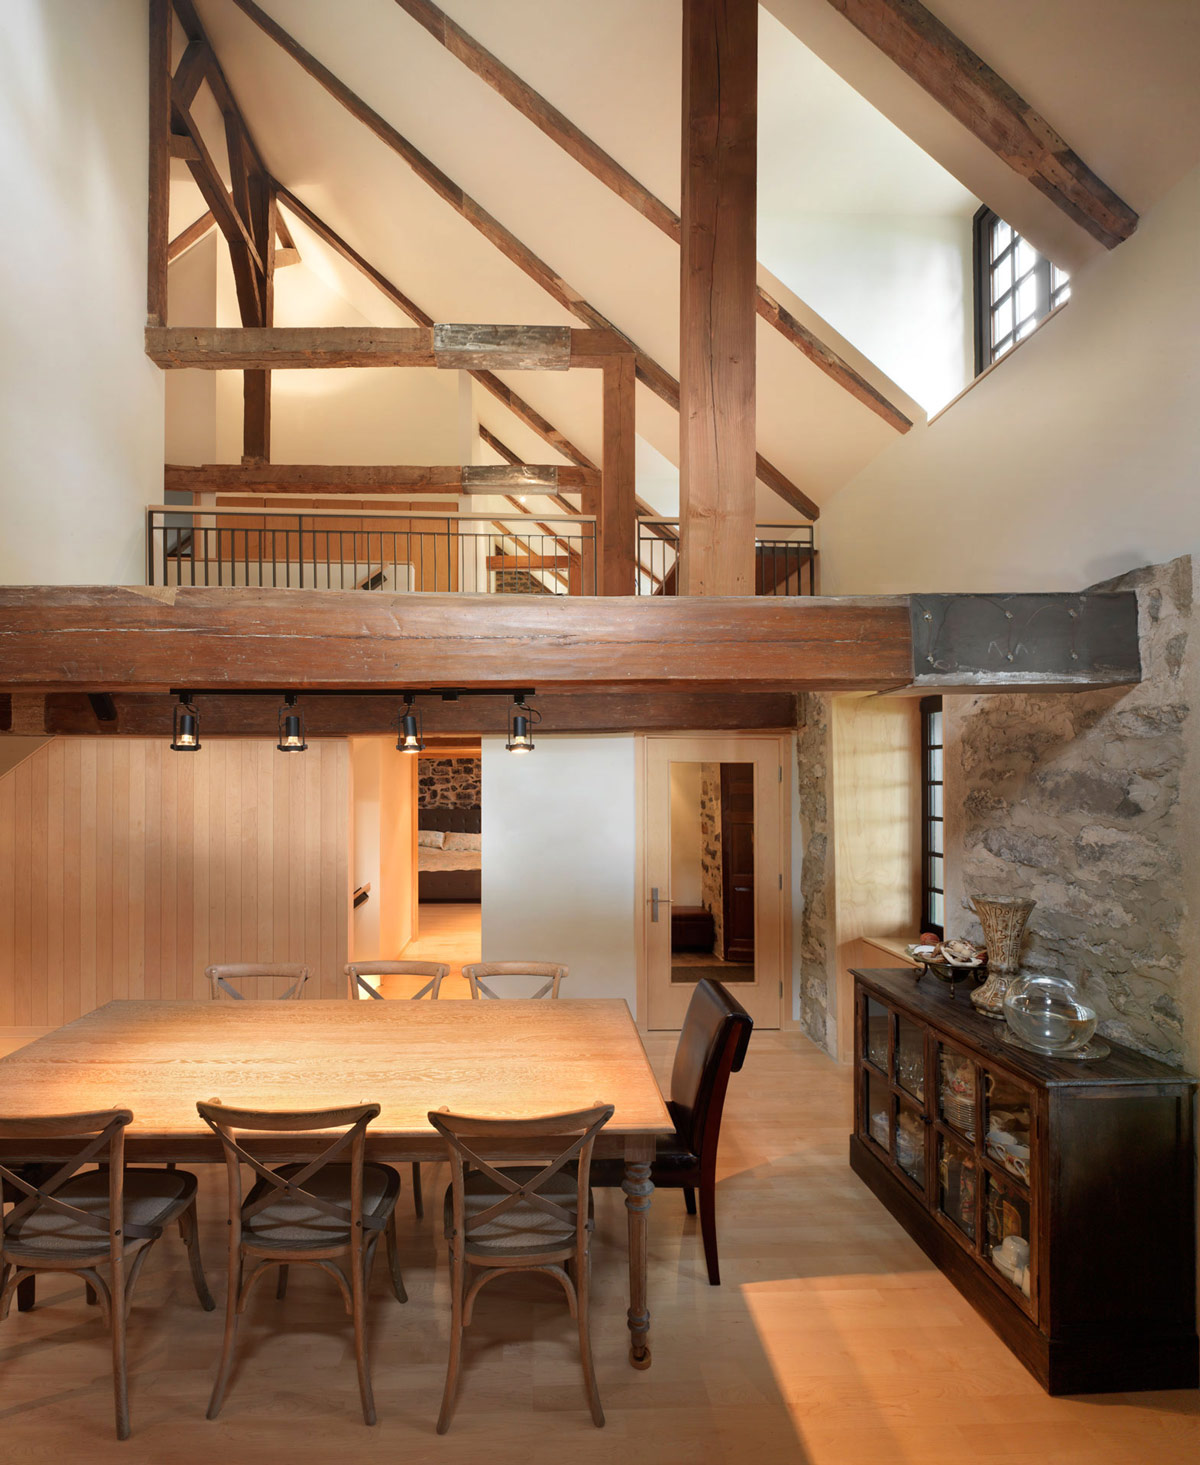 Dining Room, Beams, Stone Walls, Renovation and Addition in Dorval, Canada